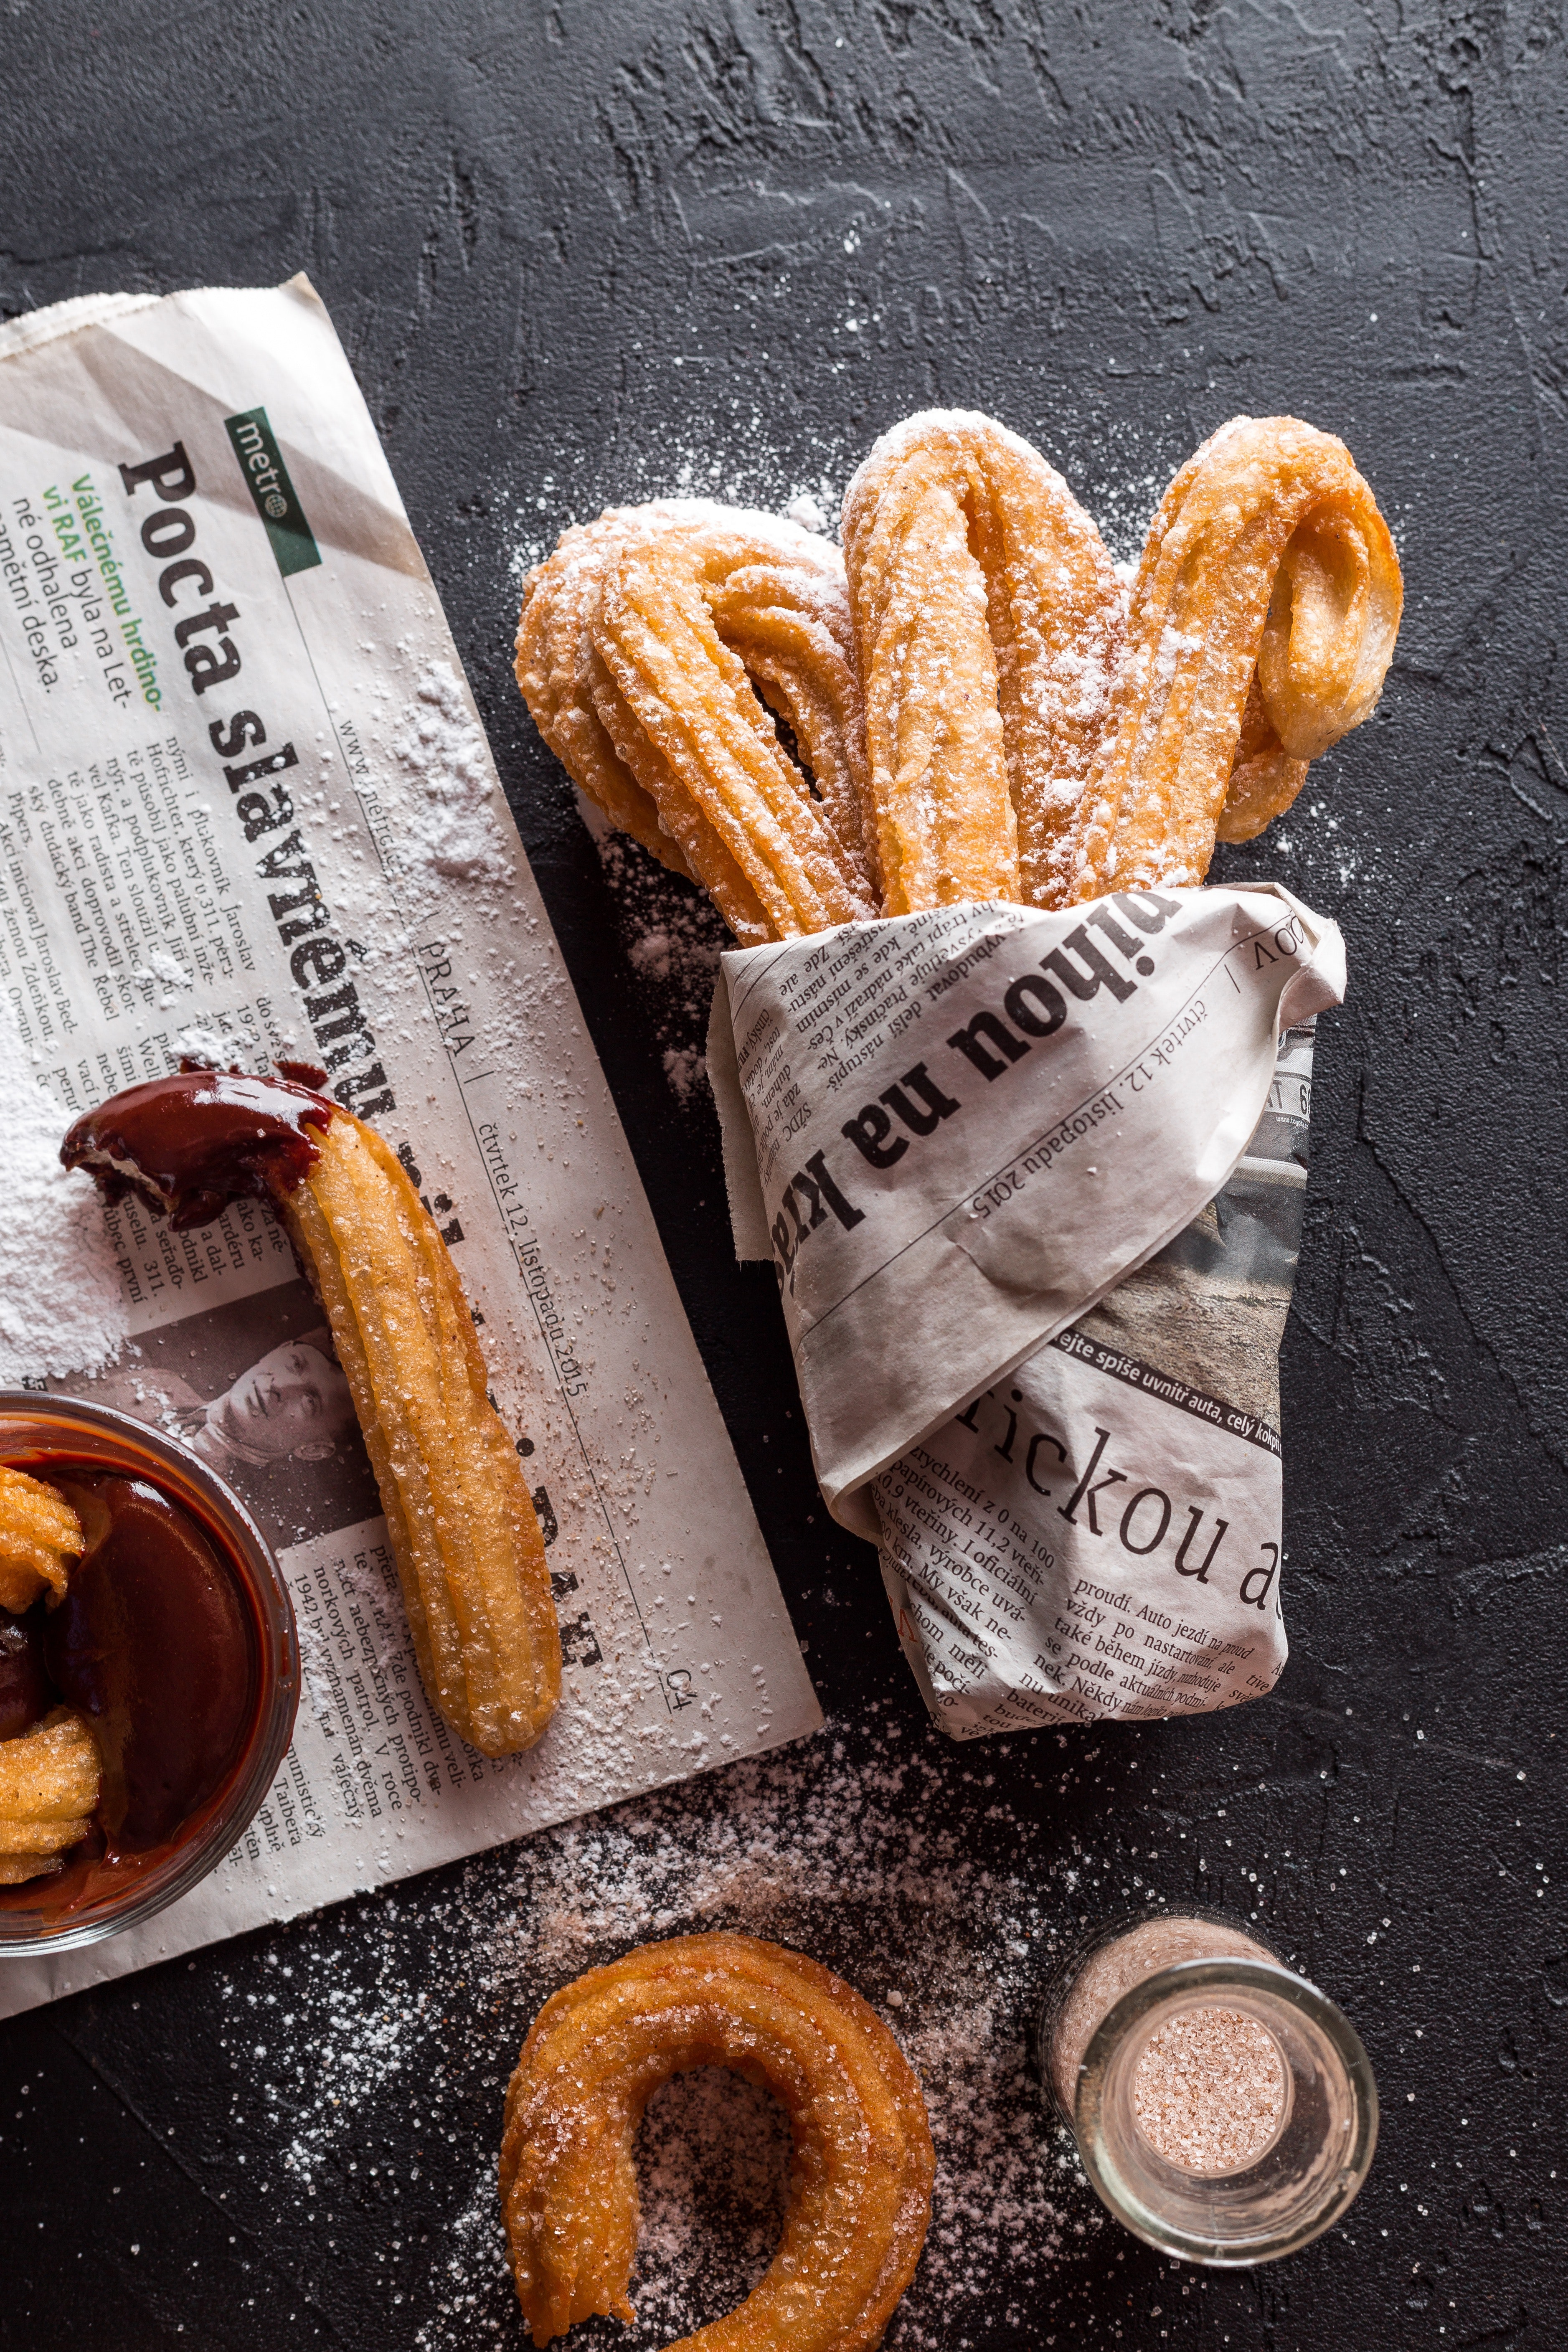 The churros have made a return after proving a hit with shoppers last year. Credit: Pexels